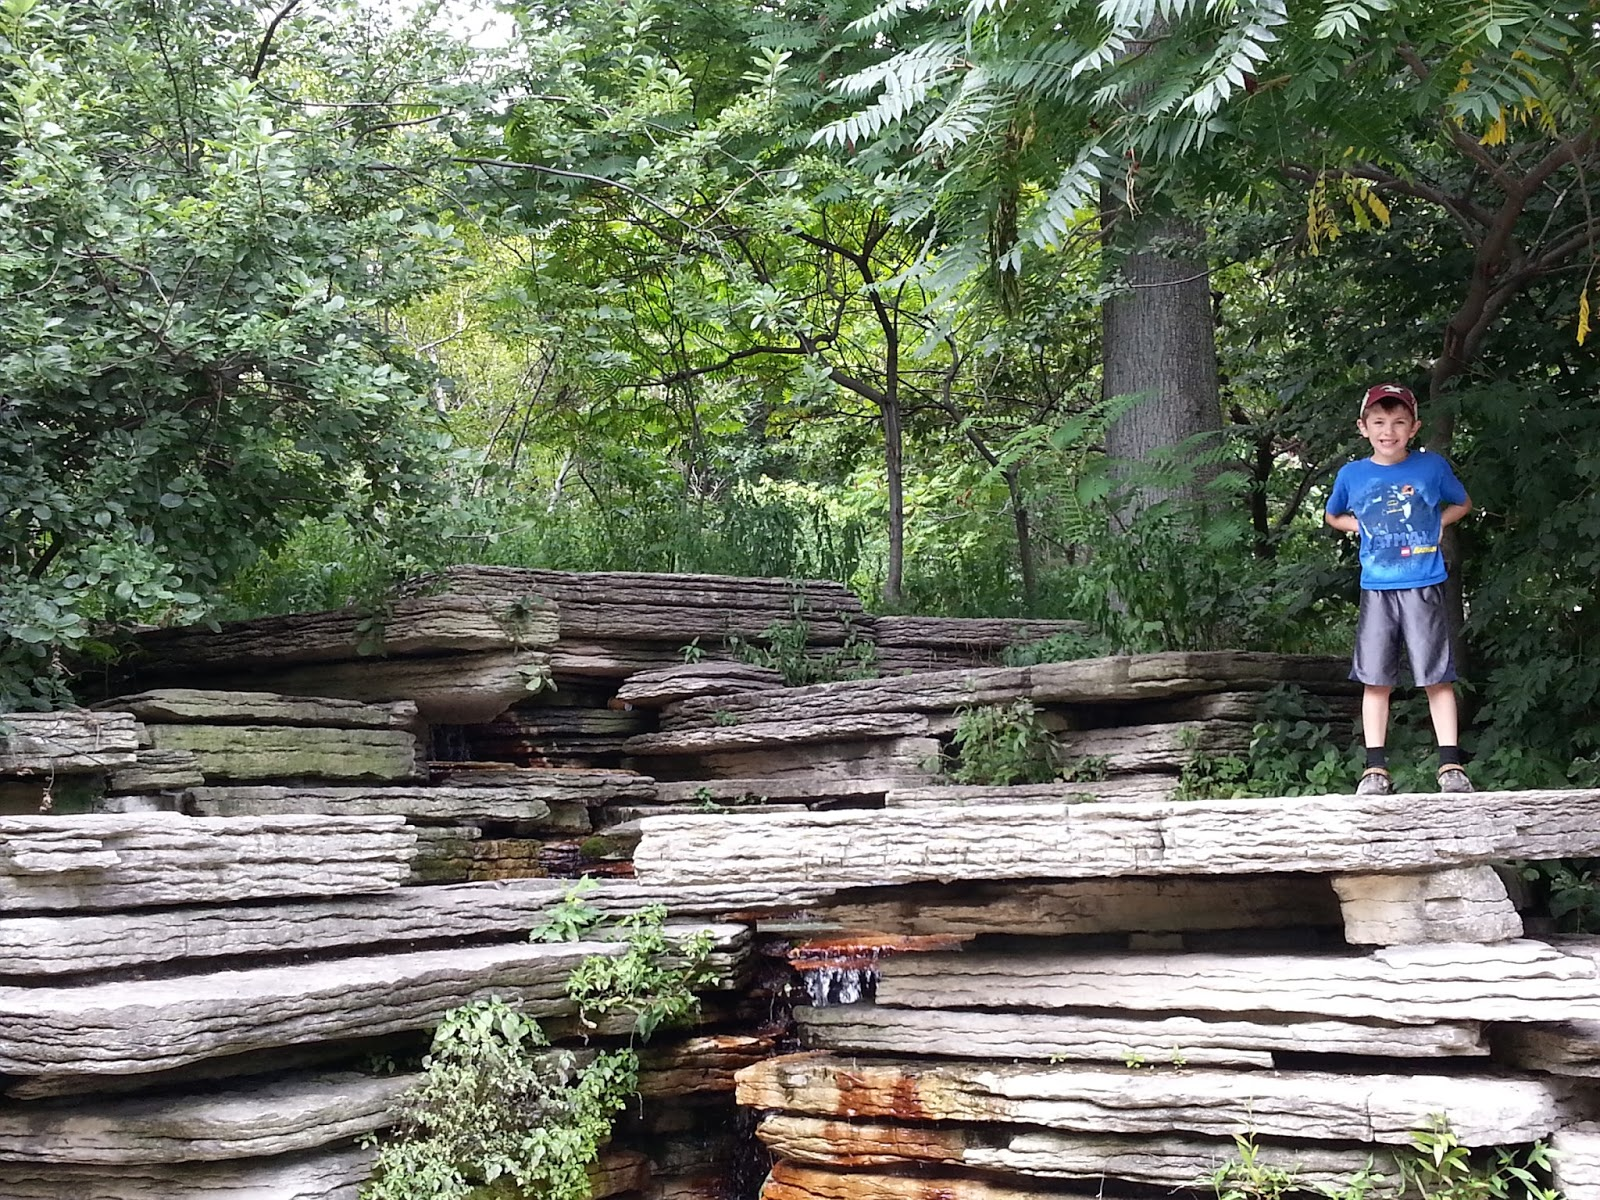 The Chicago Real Estate Local Free Kids Fun Sculpture Spelunking And Giraffe Calling In